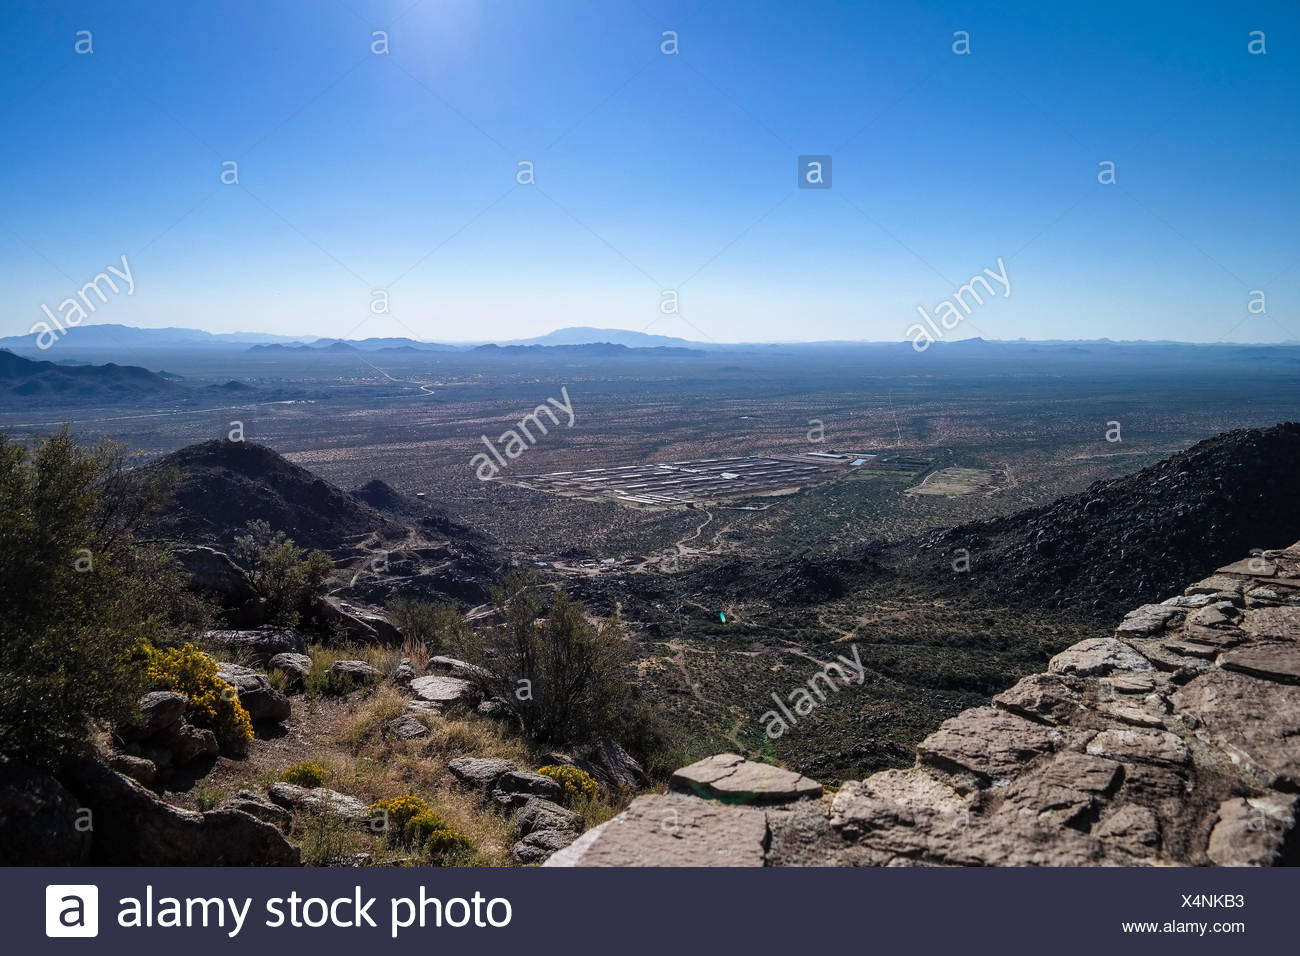 Human Settlement In Valley - Stock Image